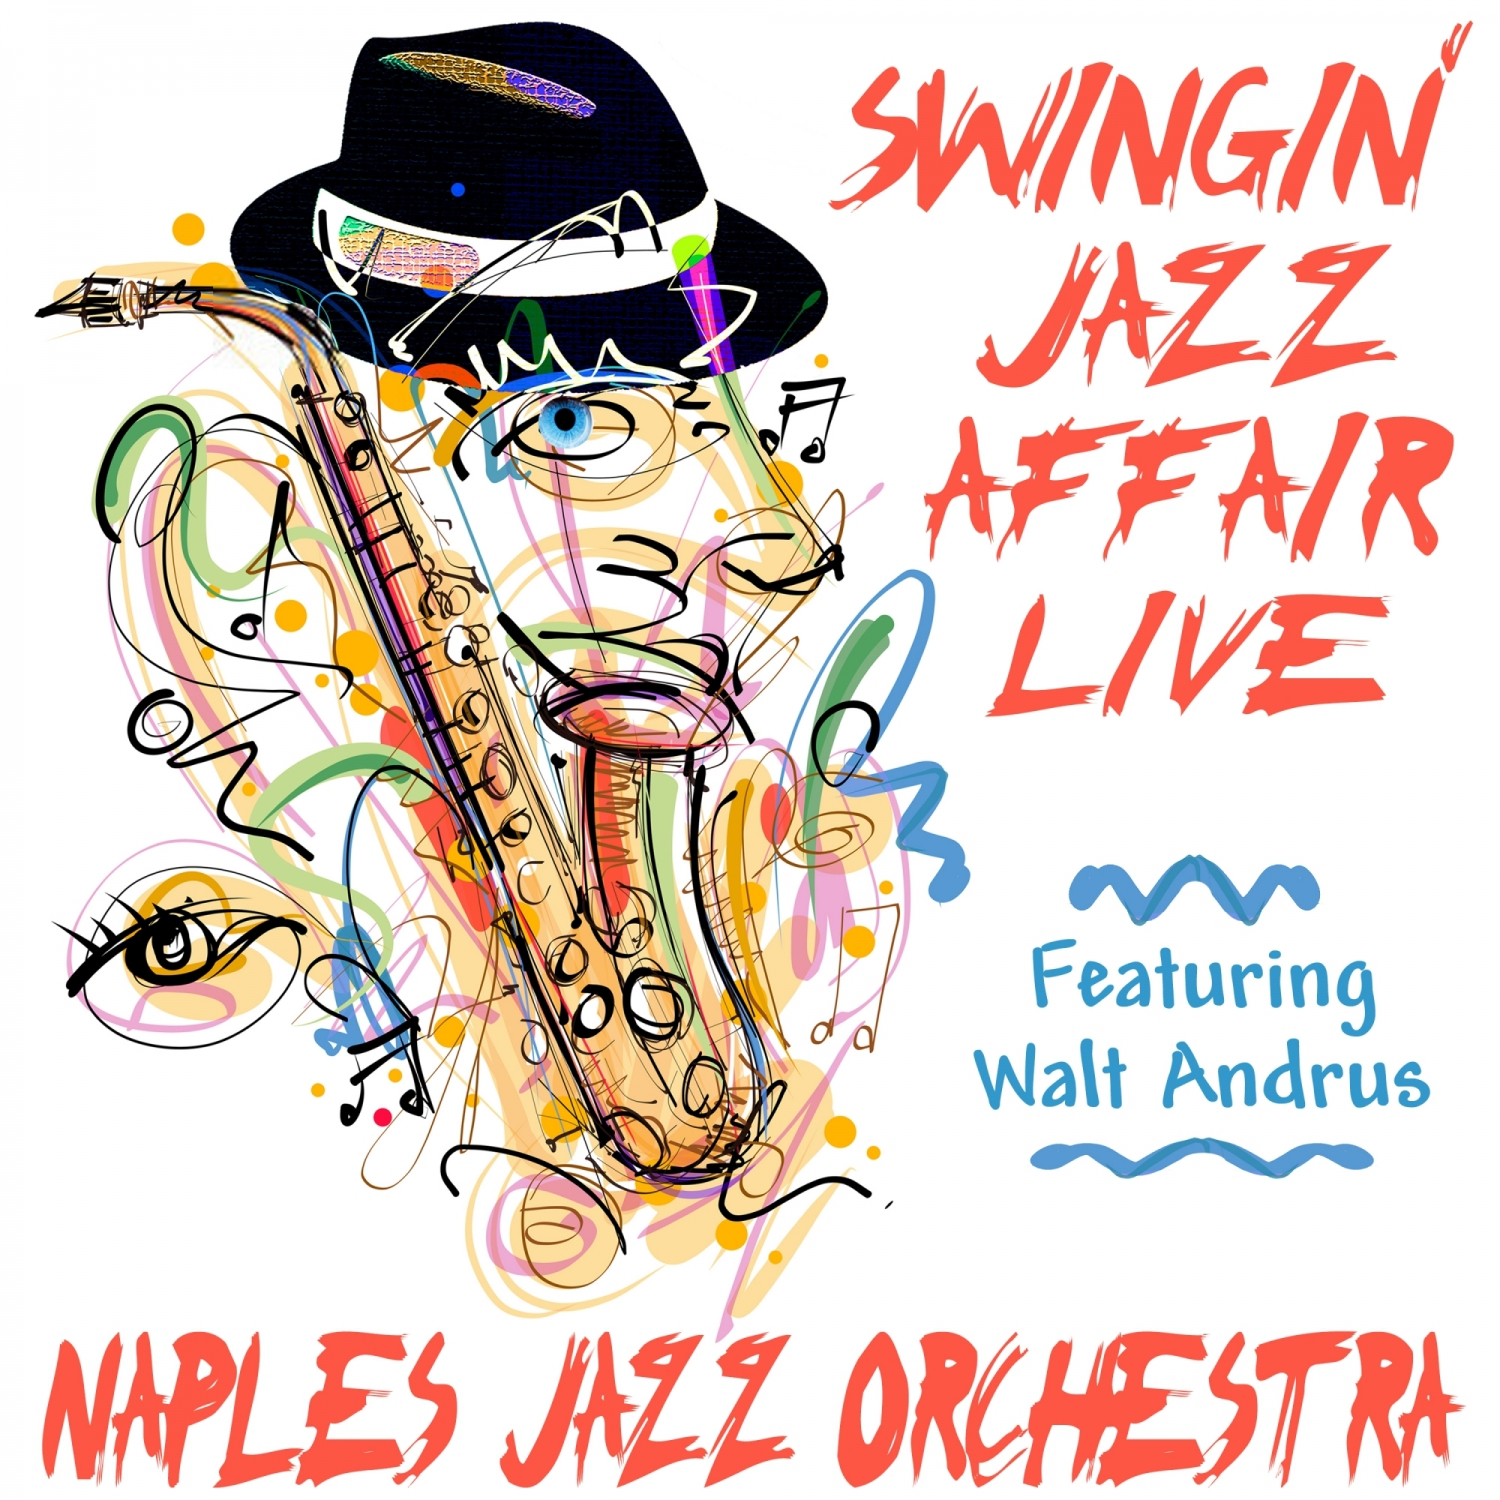 The Naples Jazz Orchestra  - I Get a Kick out of You  (feat. Walt Andrus)